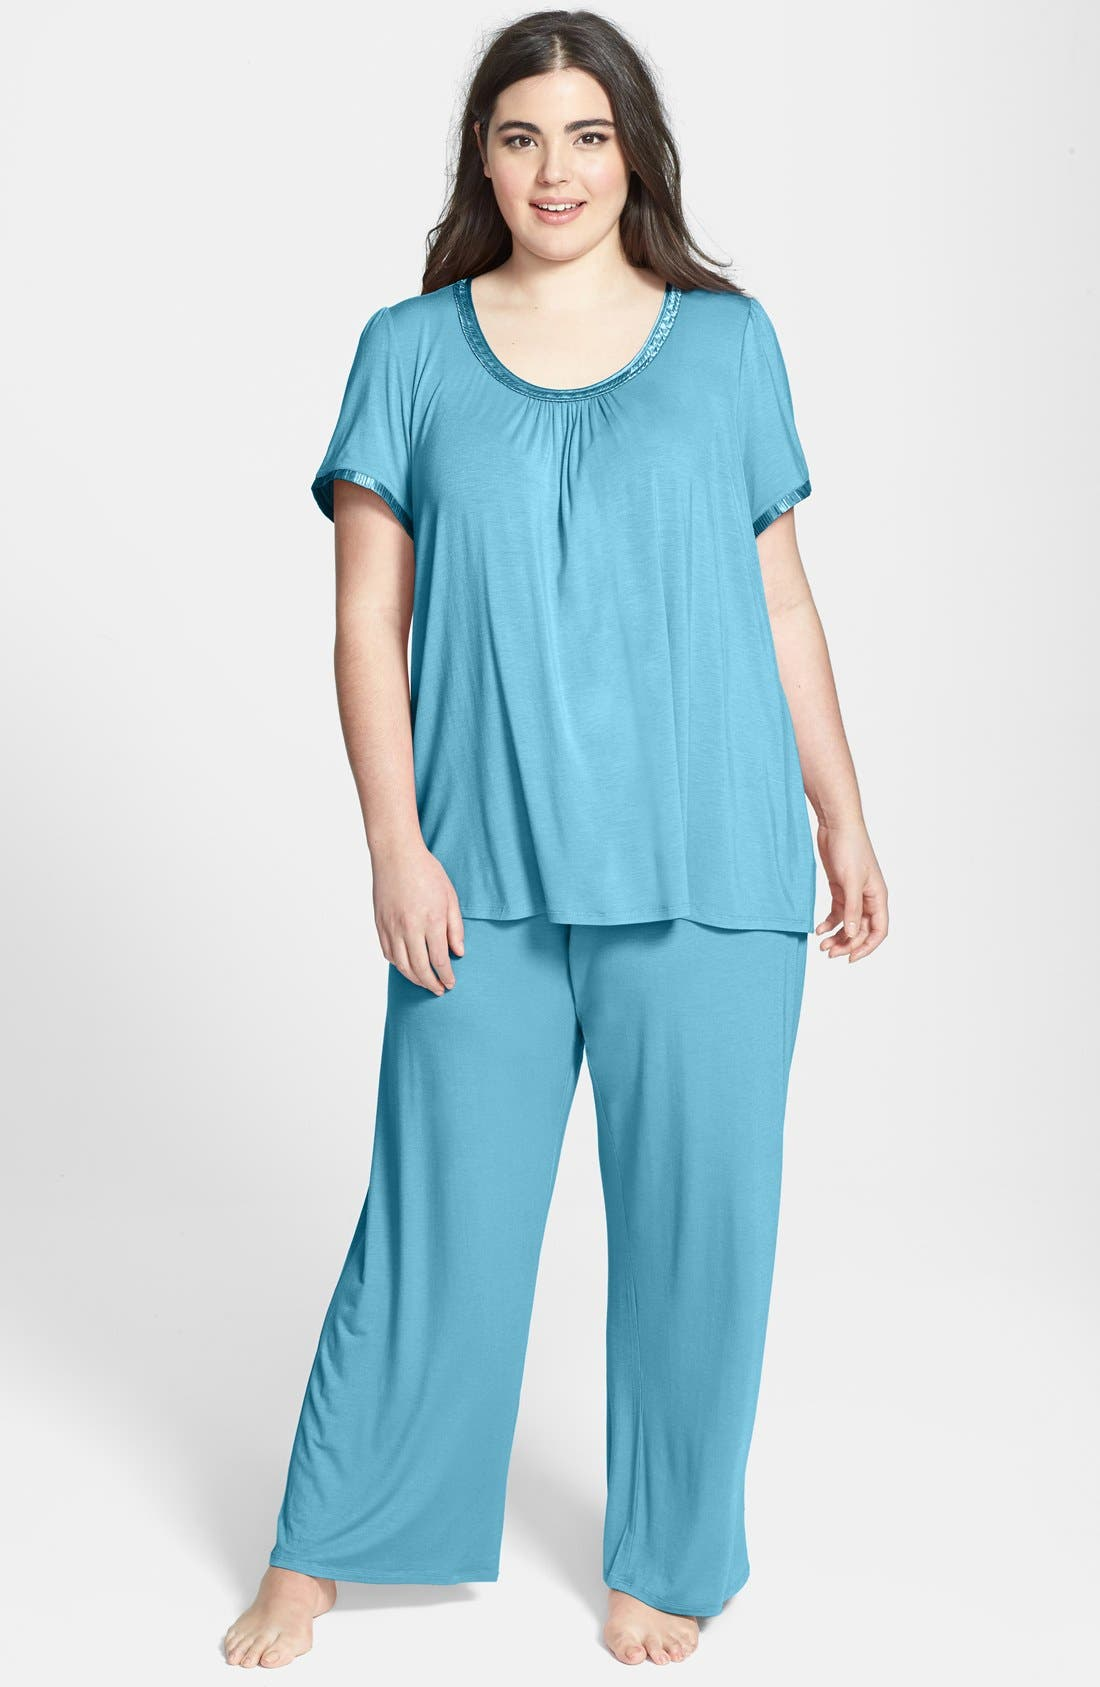 Main Image - Midnight by Carole Hochman 'Magic Moment' Pajamas (Plus Size)